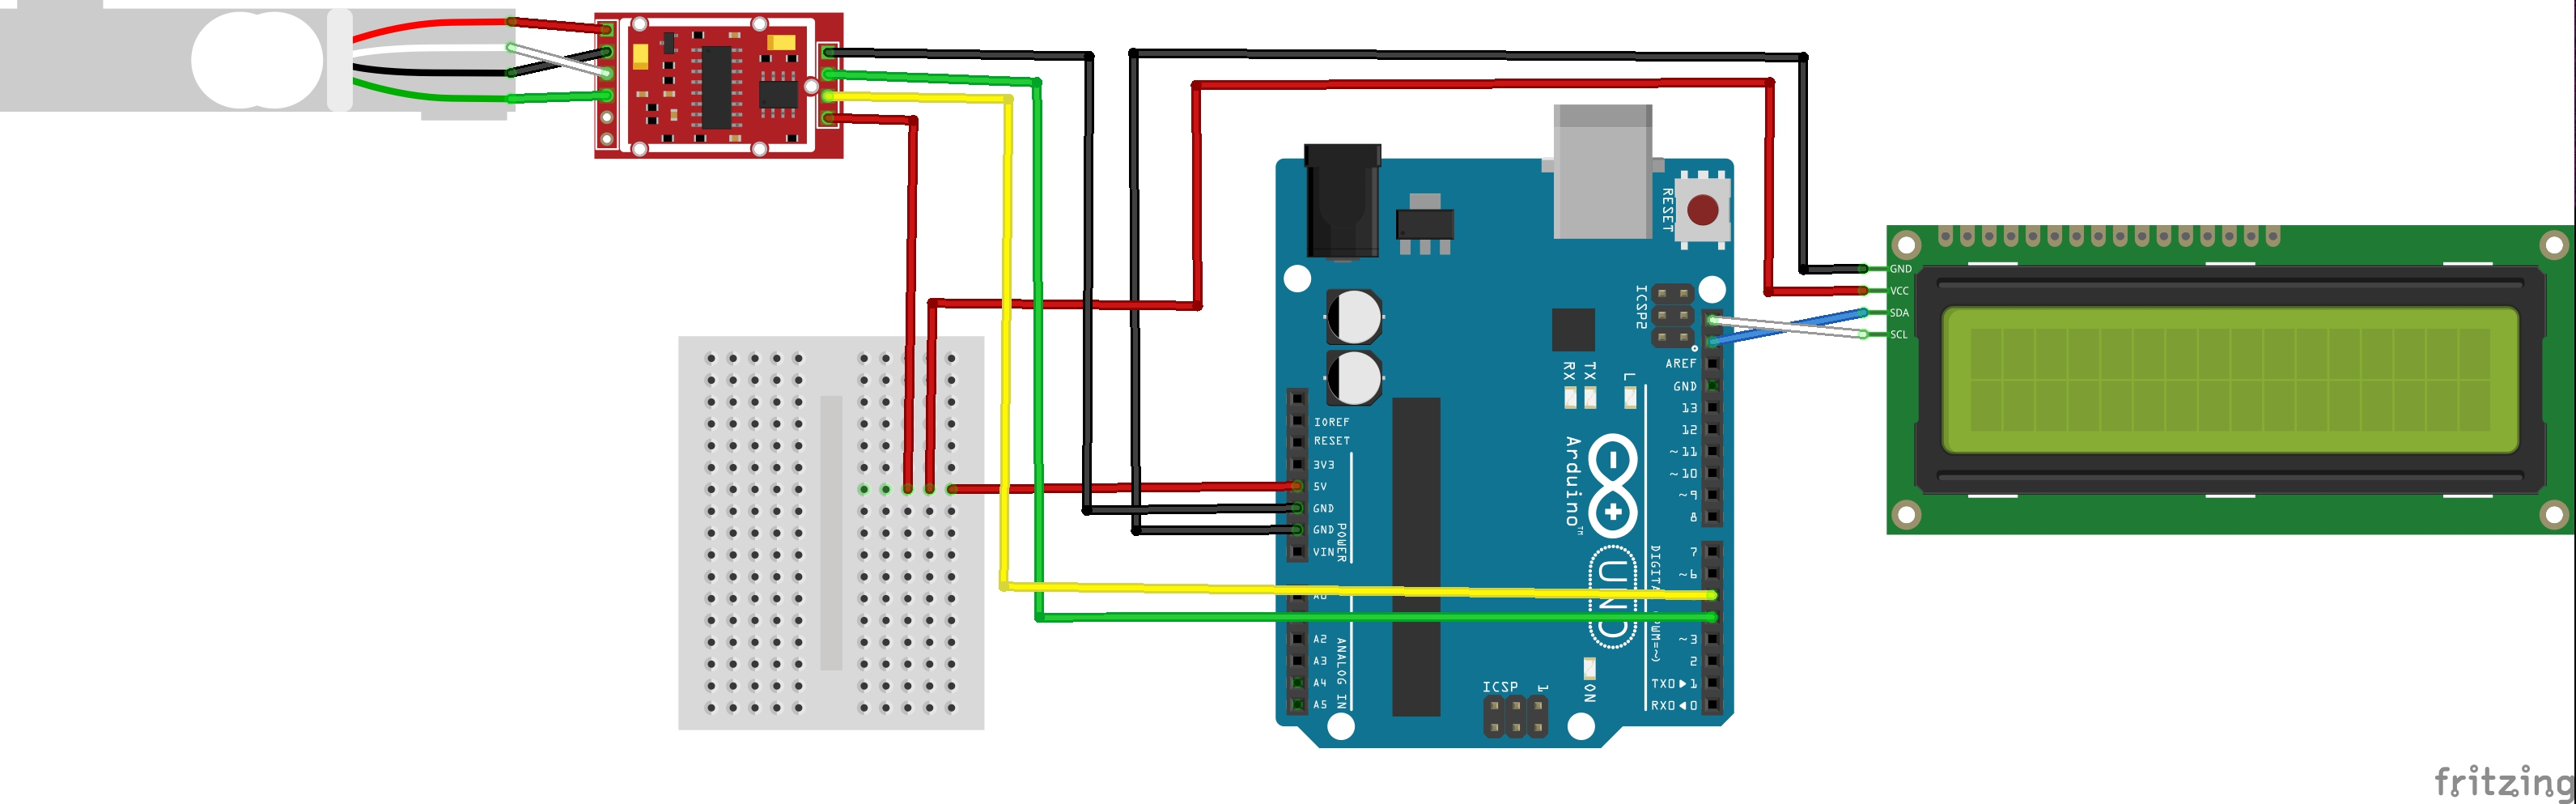 Arduino Tutorial Hx711 Load Cell Amplifier Weight Sensor Module 4 Wire Wiring Diagram Fritzing File That Shows How To Connect The Moreover